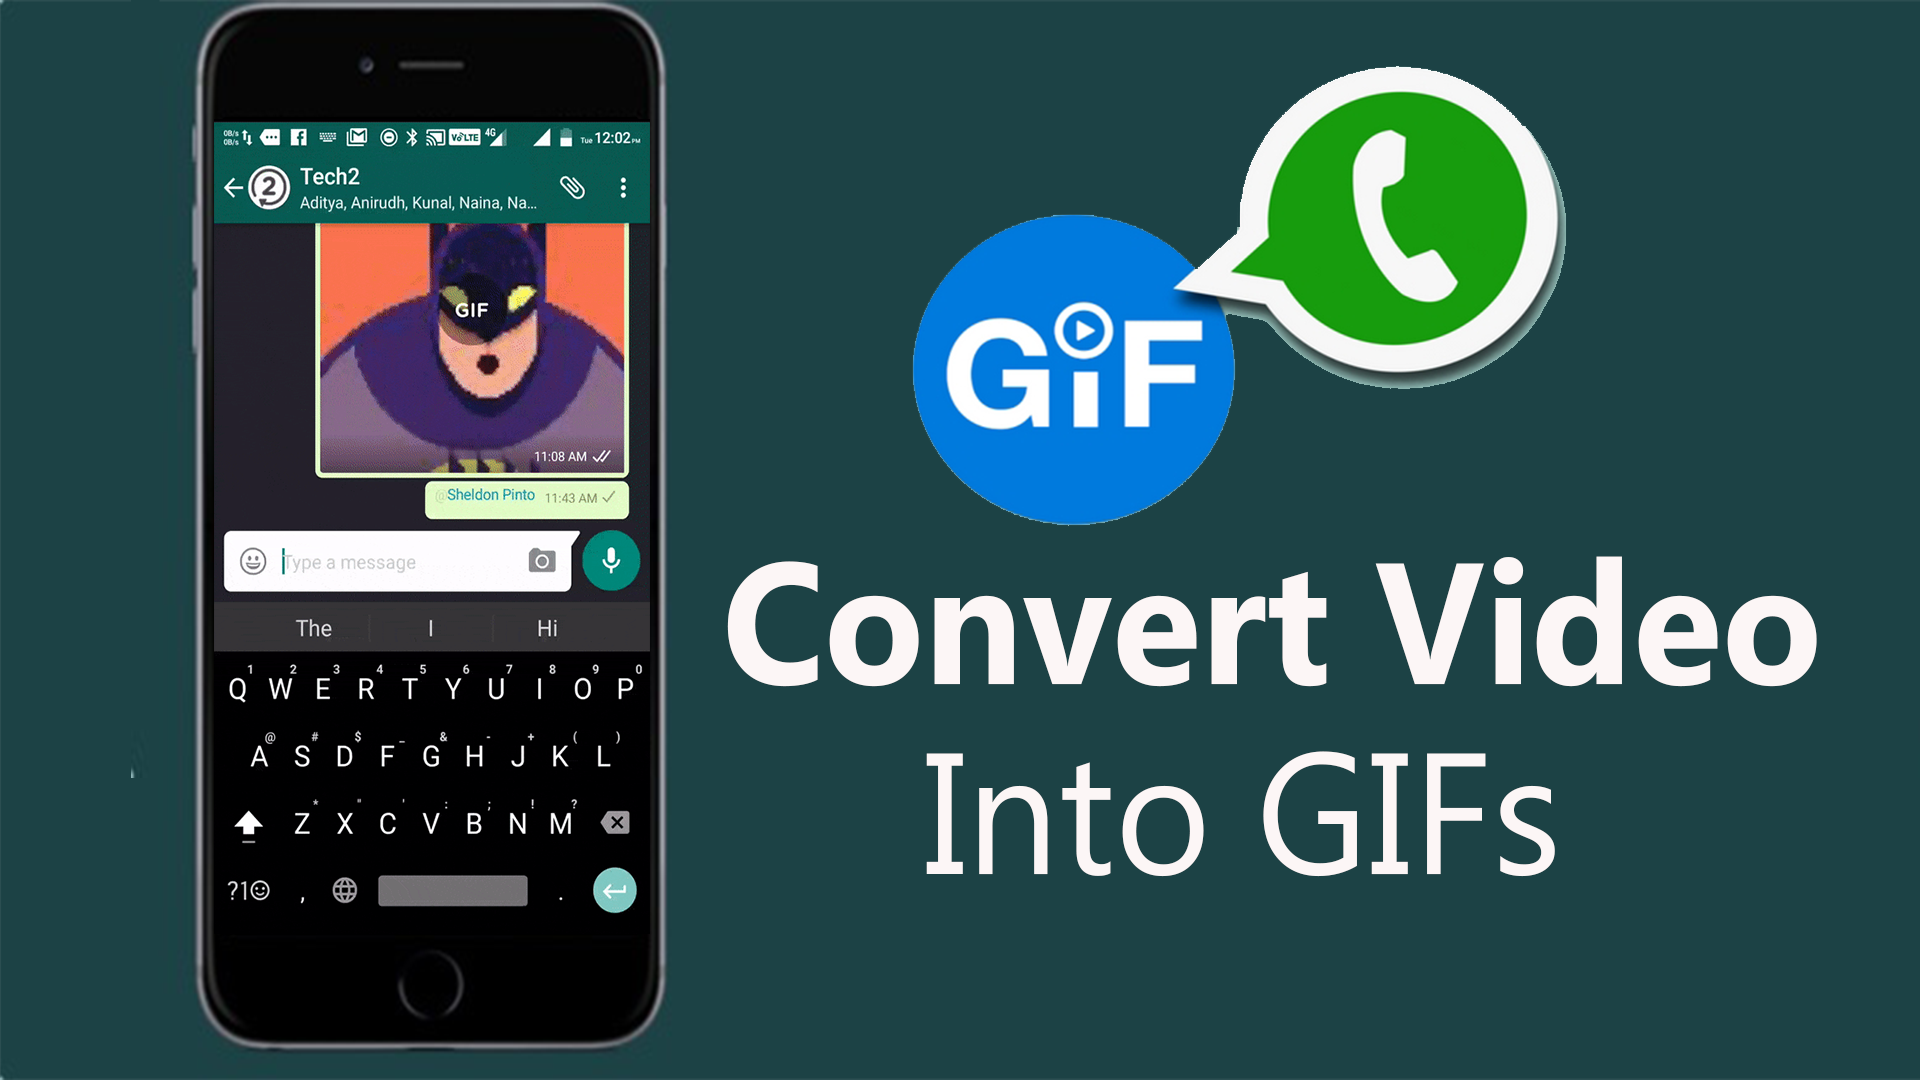 convert video to gif on Whatsapp